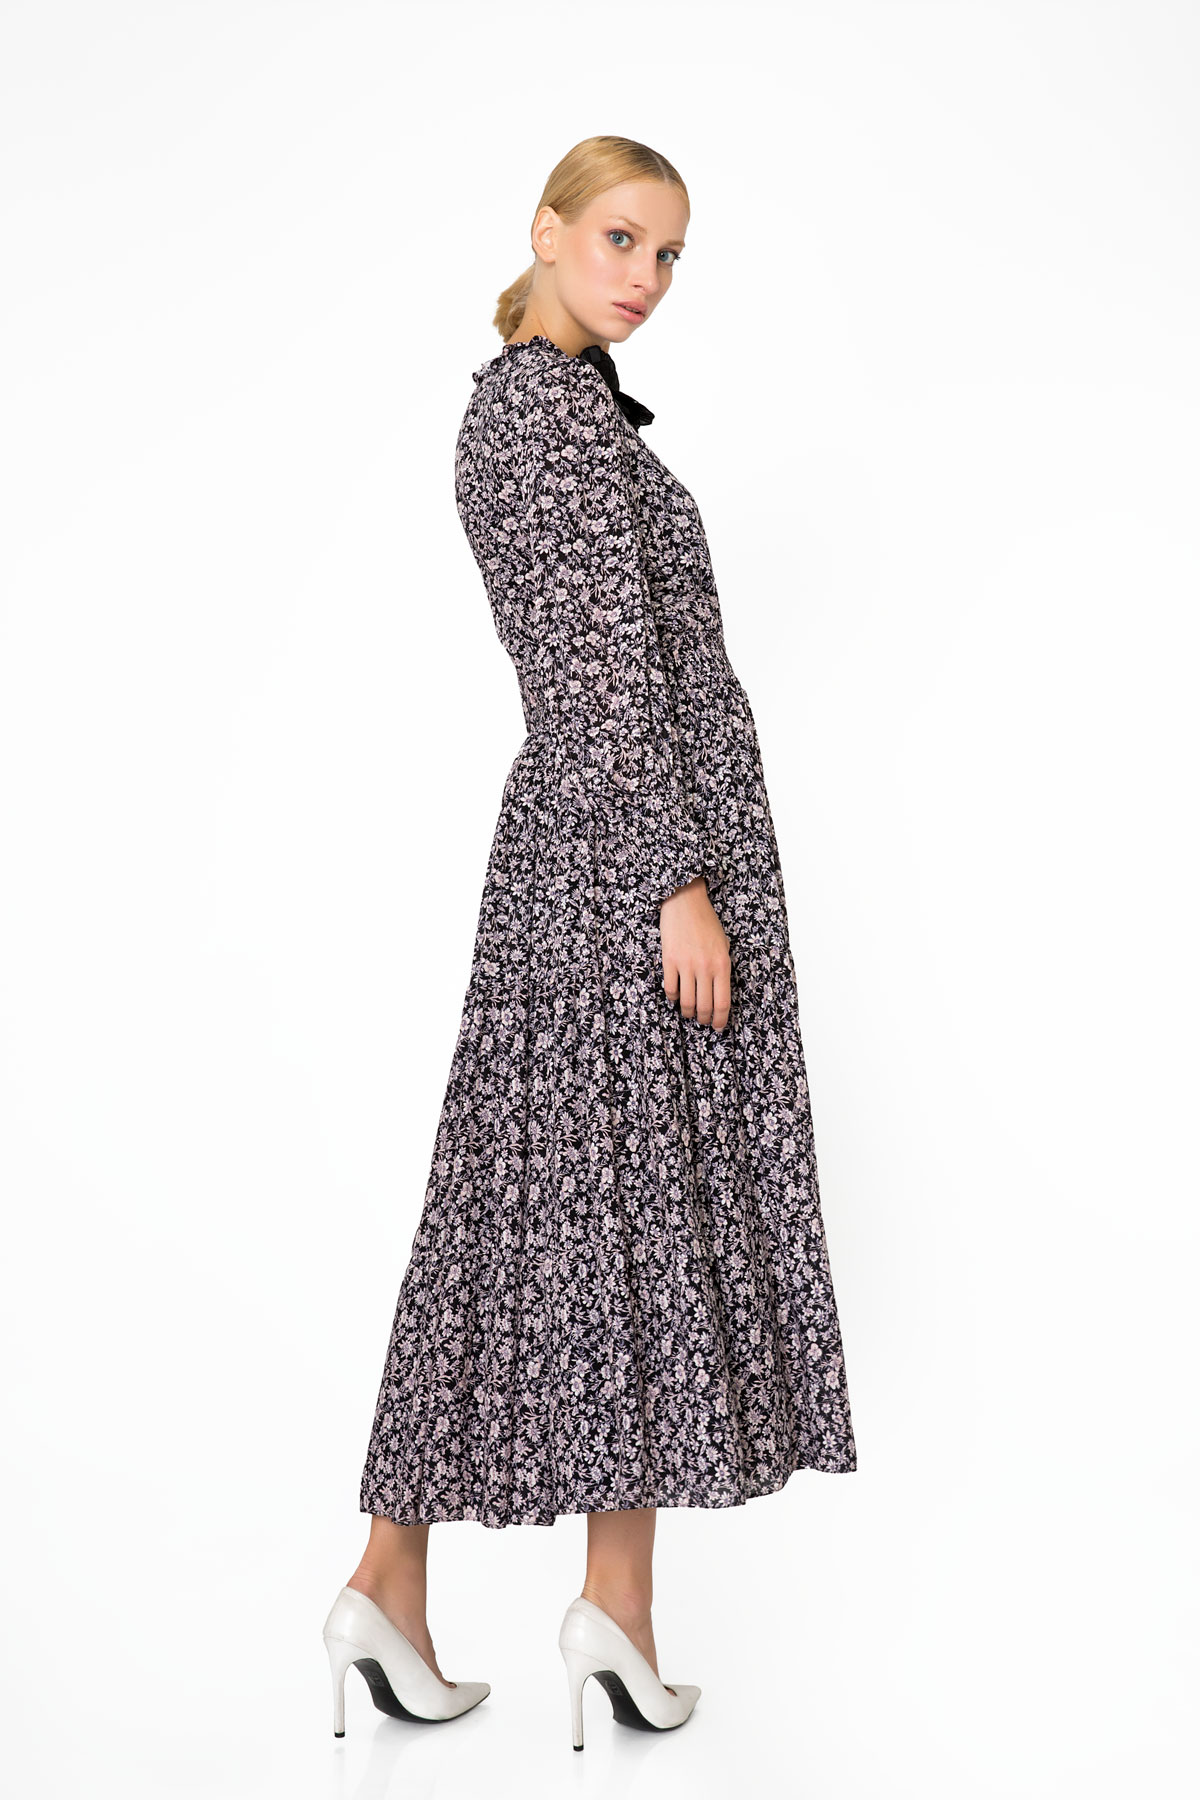 Collar Applique Detailed Flower Patterned Long Dress with Pockets